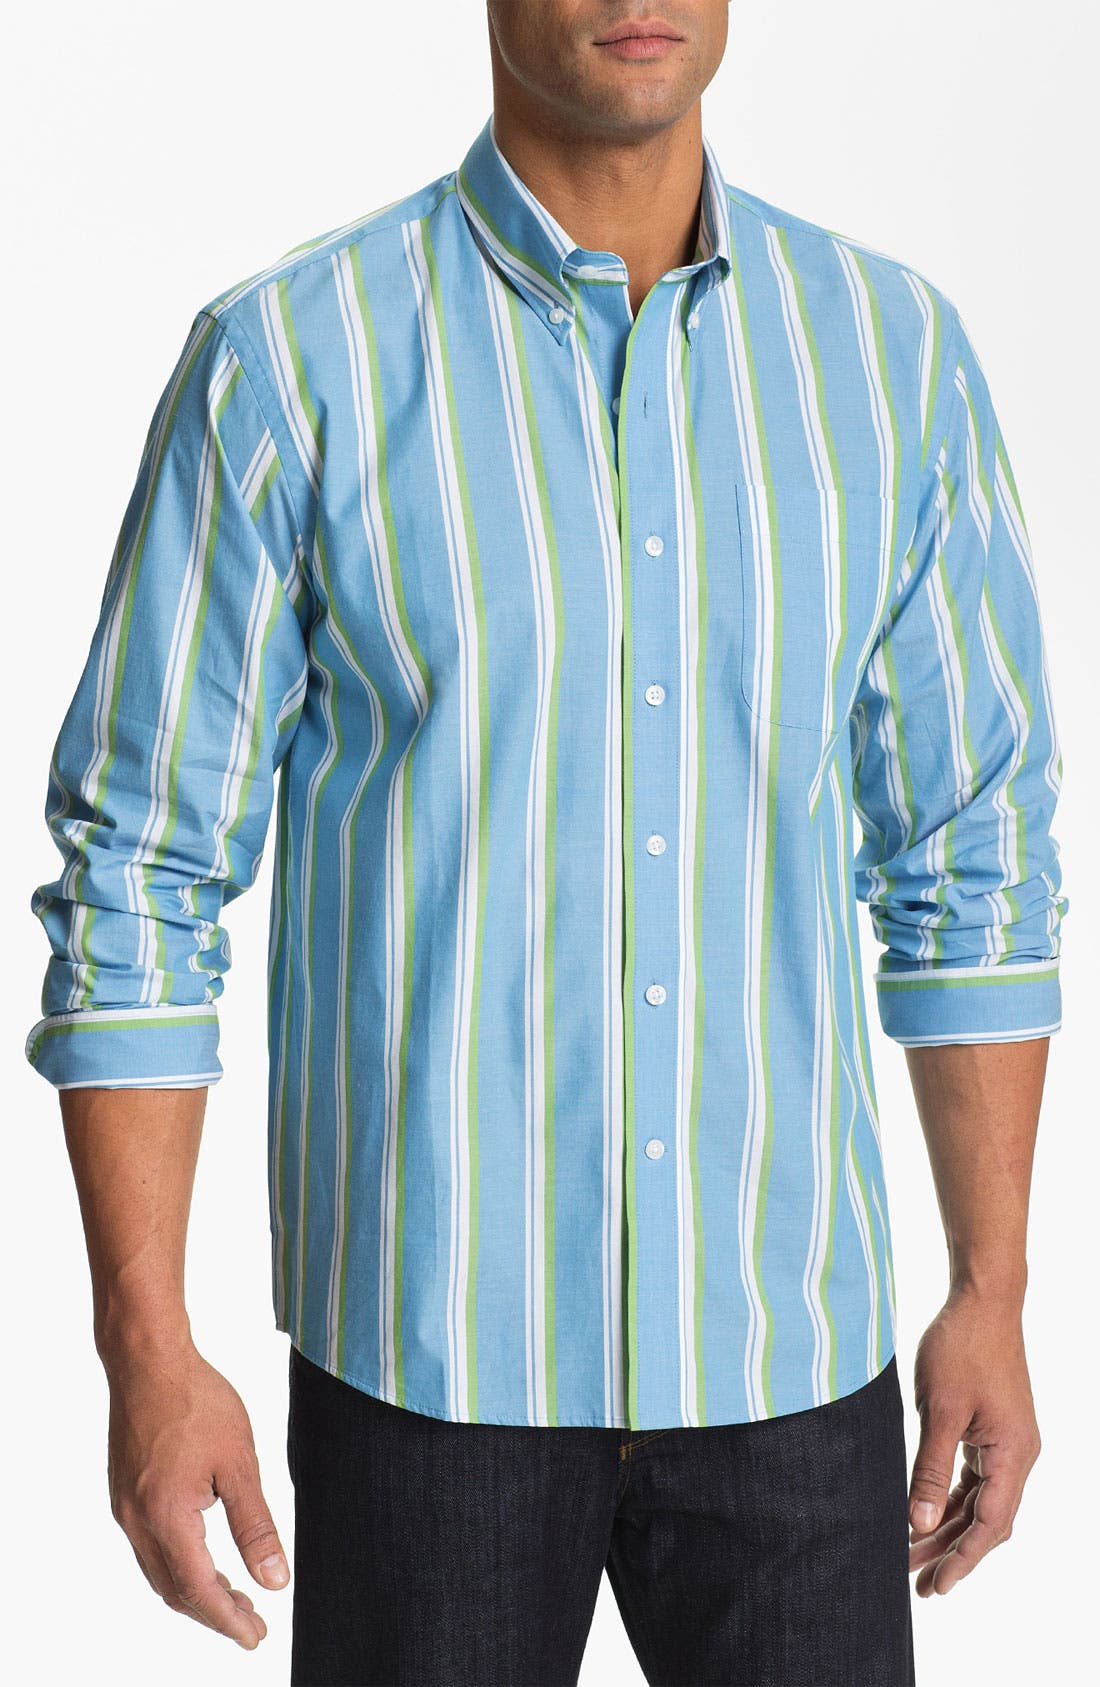 Main Image - Cutter & Buck 'Whitmire Stripe' Regular Fit Sport Shirt (Big & Tall)